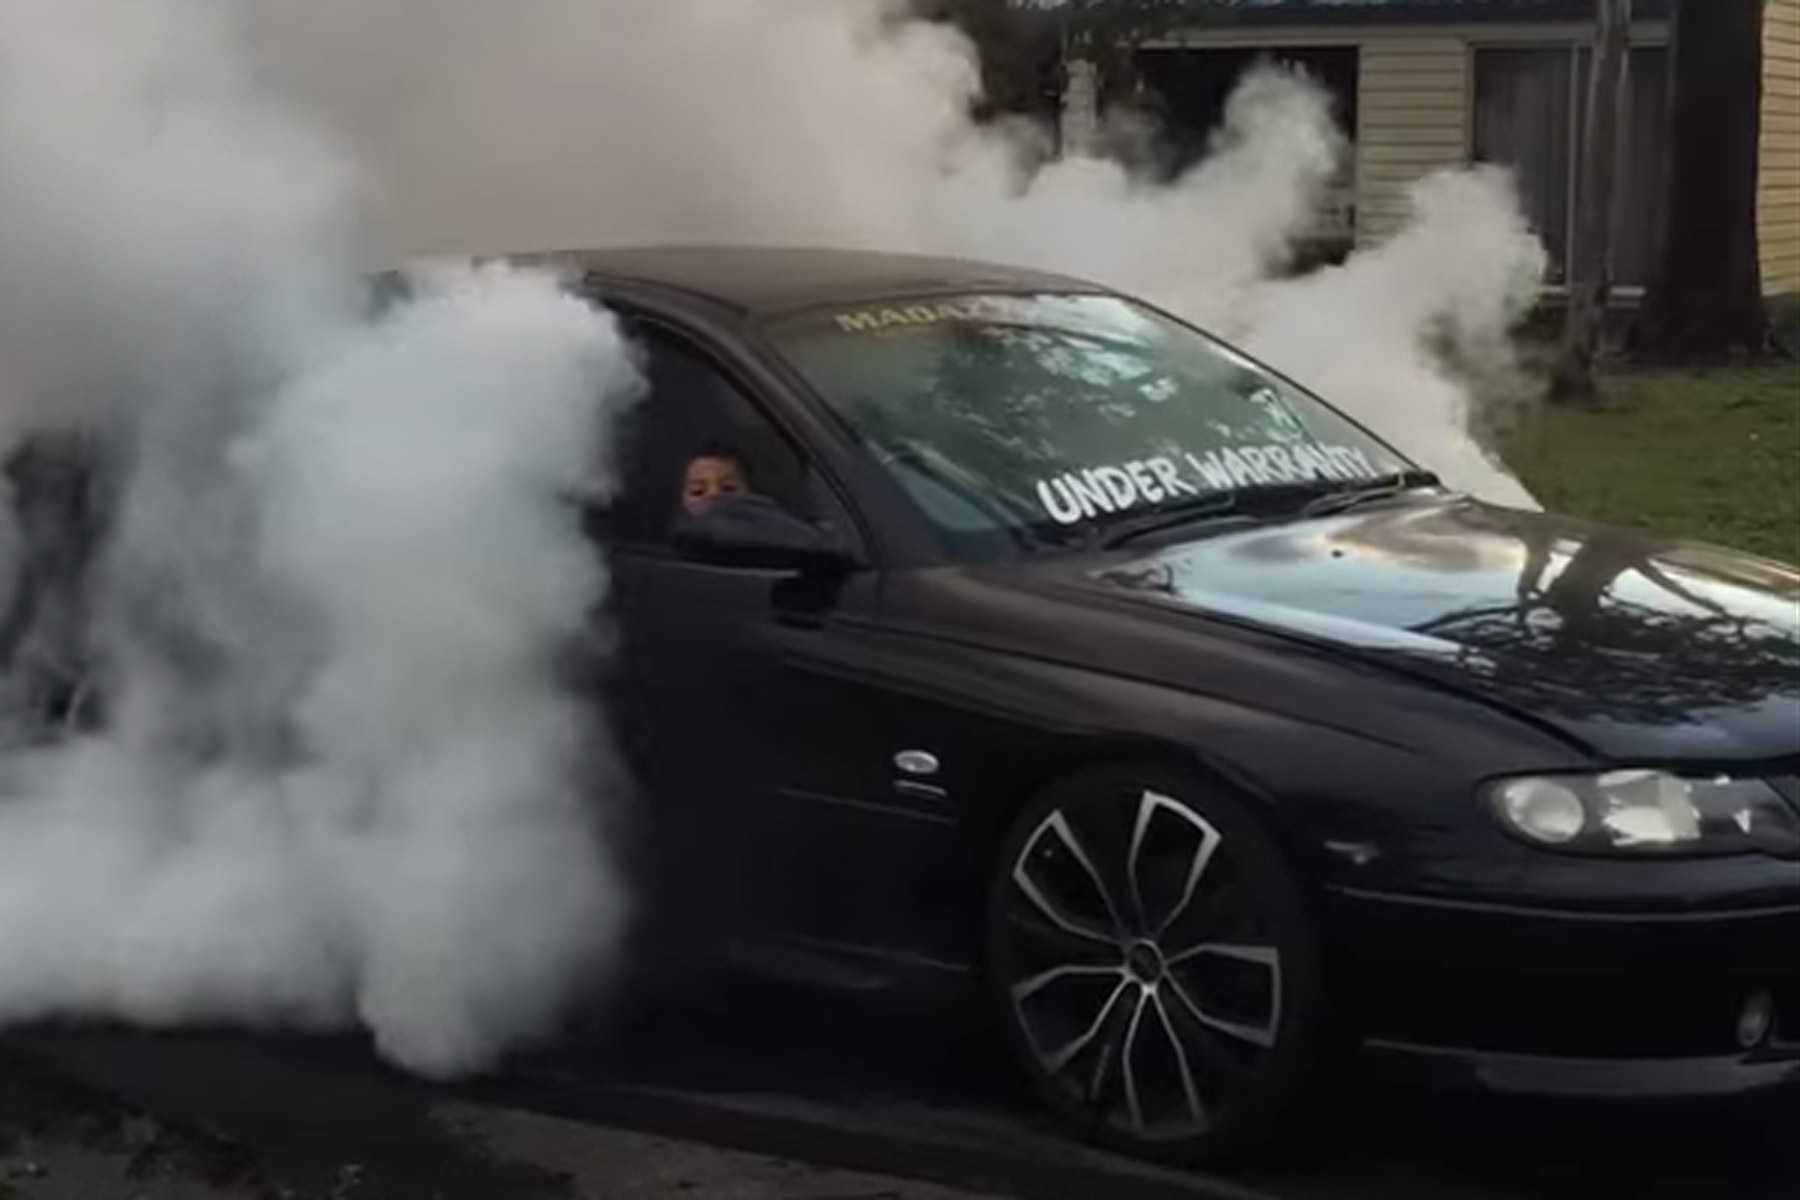 Cops seize car after 5-year-old filmed doing a burnout